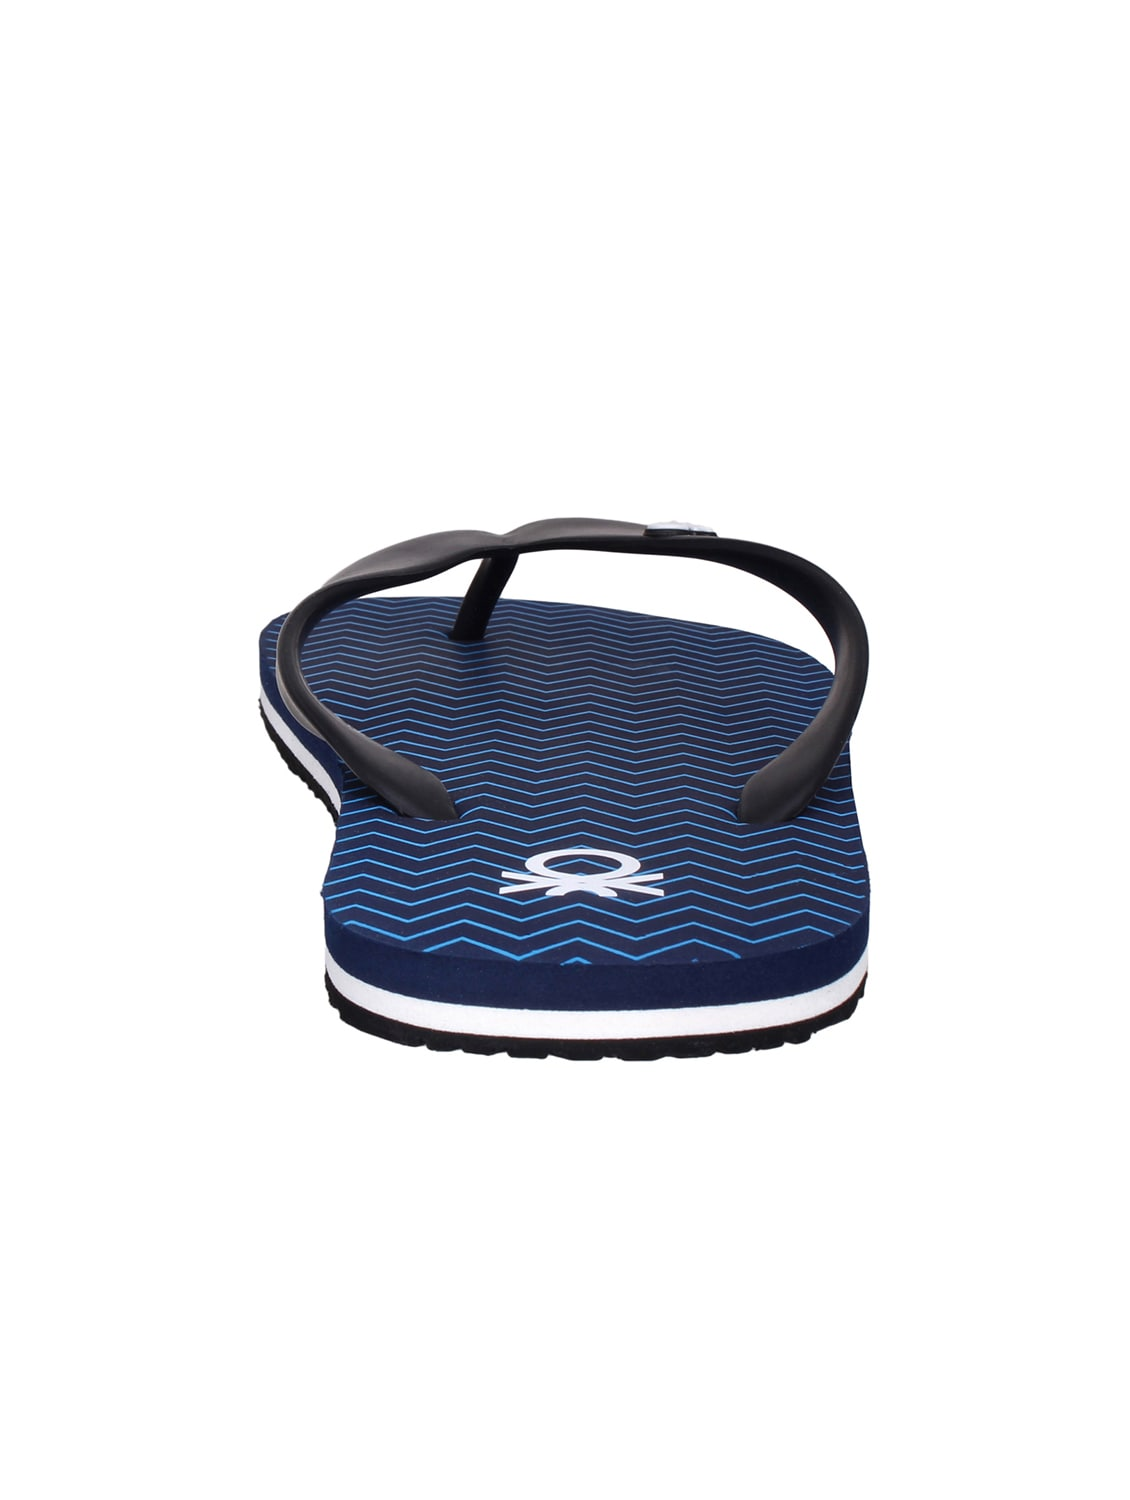 88f89779a Buy Navy Rubber Toe Separator Slippers for Men from Ucb for ₹499 at ...